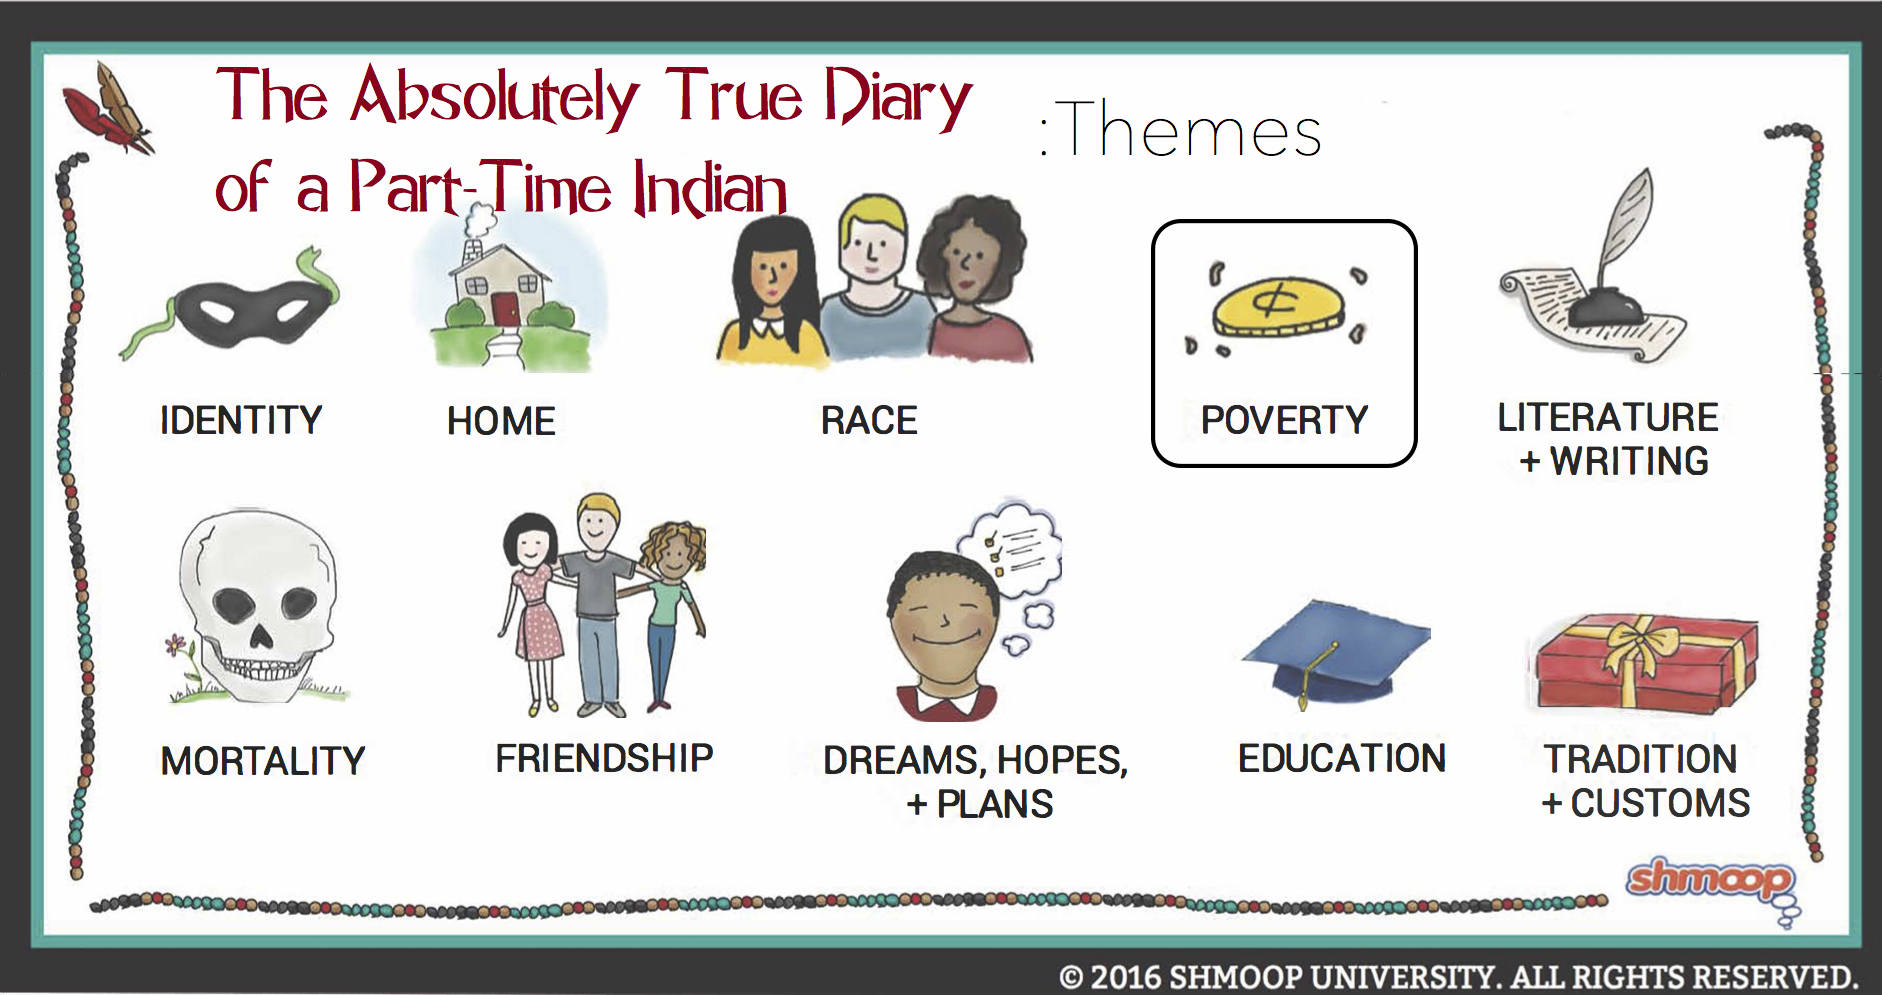 The Absolutely True Diary Of A Part Time Indian Quotes Fascinating The Absolutely True Diary Of A Parttime Indian Theme Of Poverty